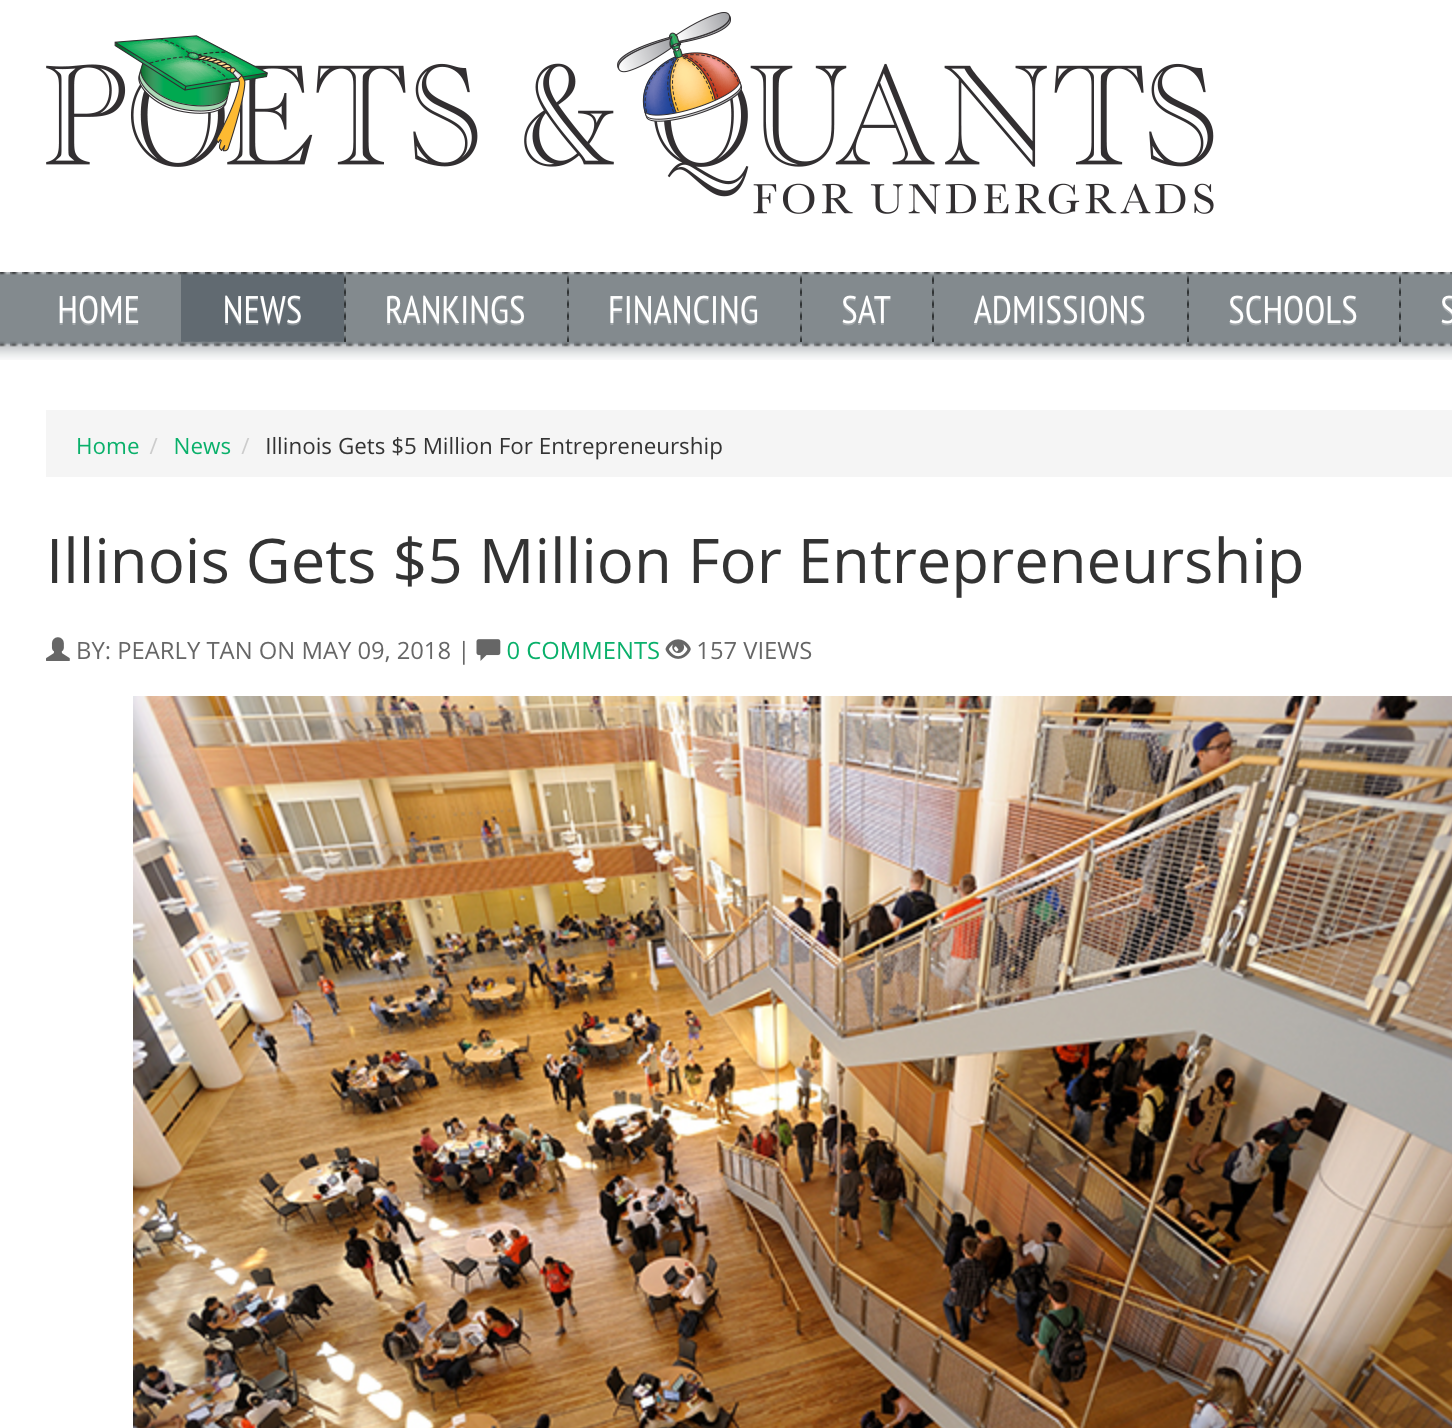 Illinois Gets $5 Million